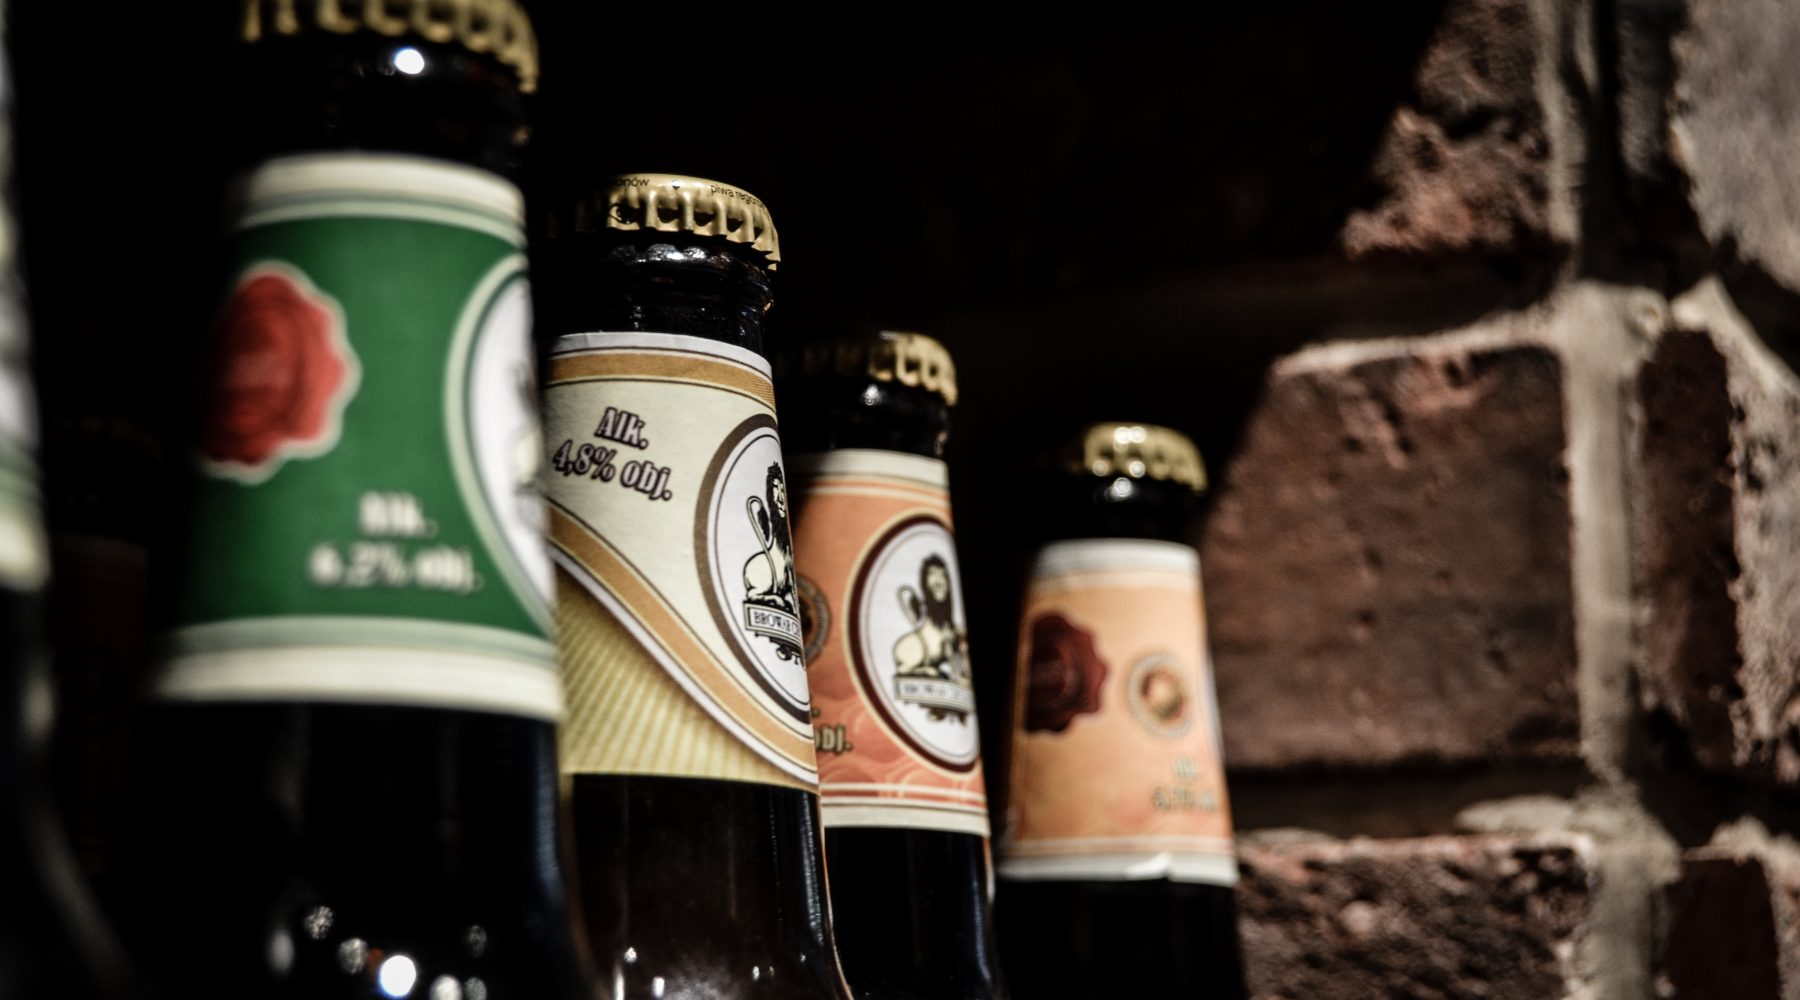 The World Guide To Beer – The History of Categorizing Beer